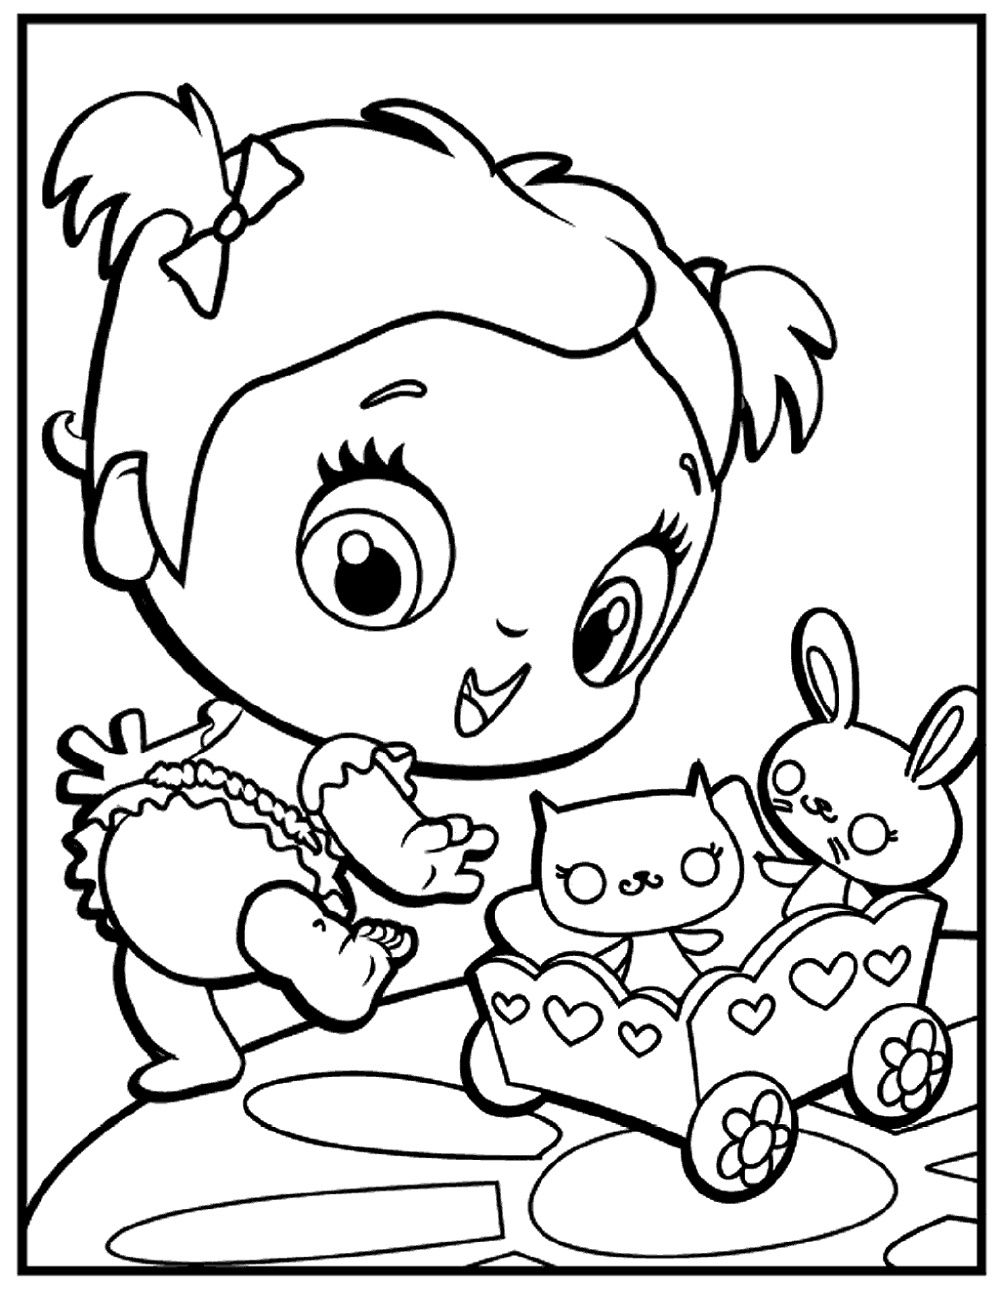 Baby Alive Coloring Pages Cute K5 Worksheets Paw Patrol Coloring Pages Baby Coloring Pages Coloring Pages